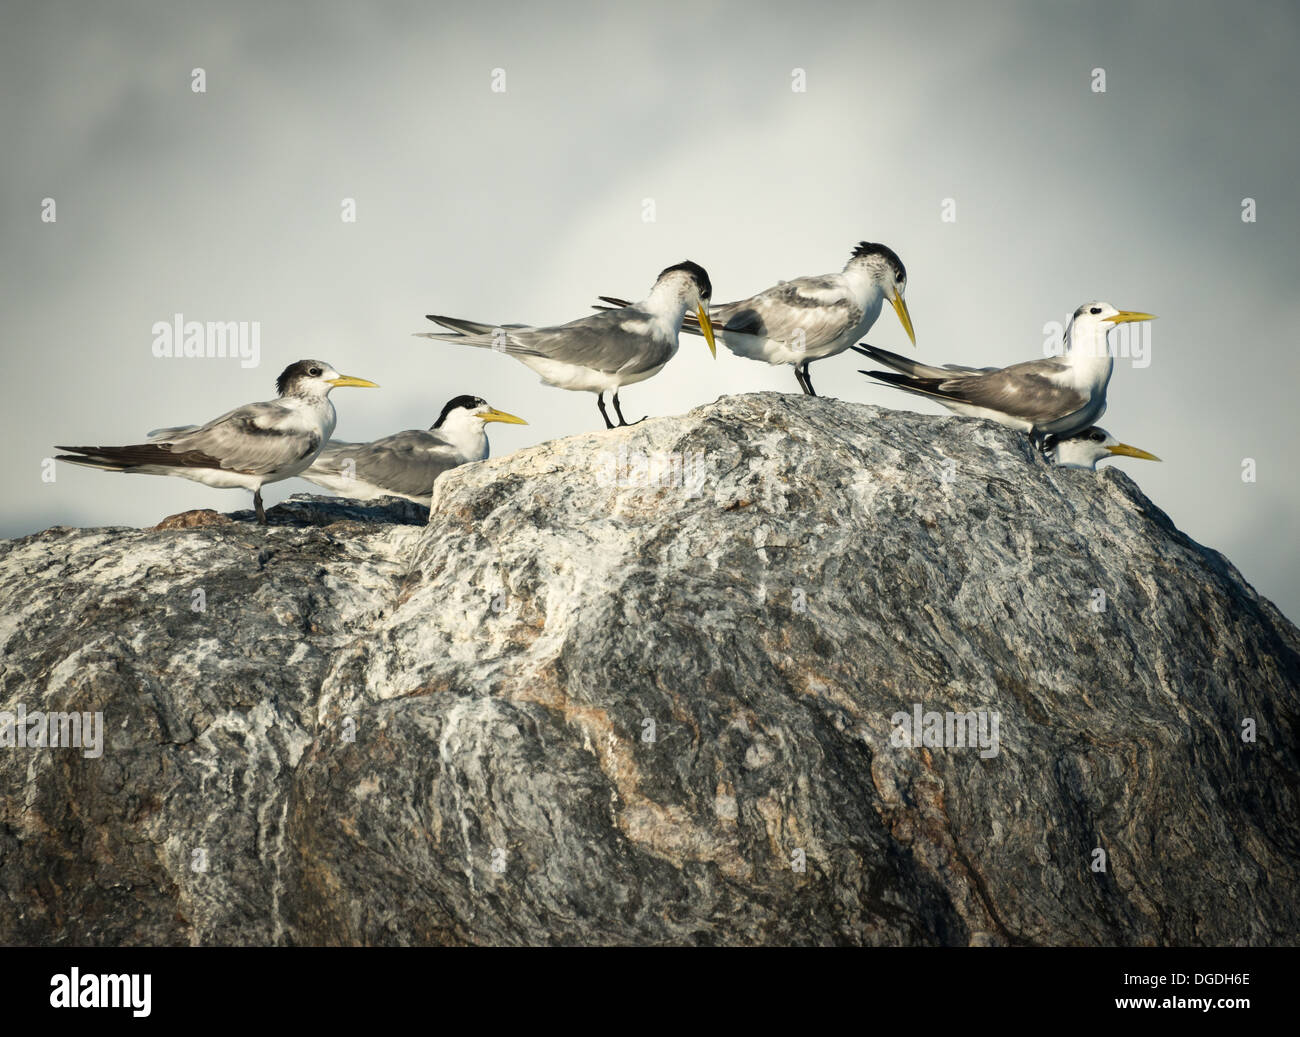 Terns on a rock - Stock Image